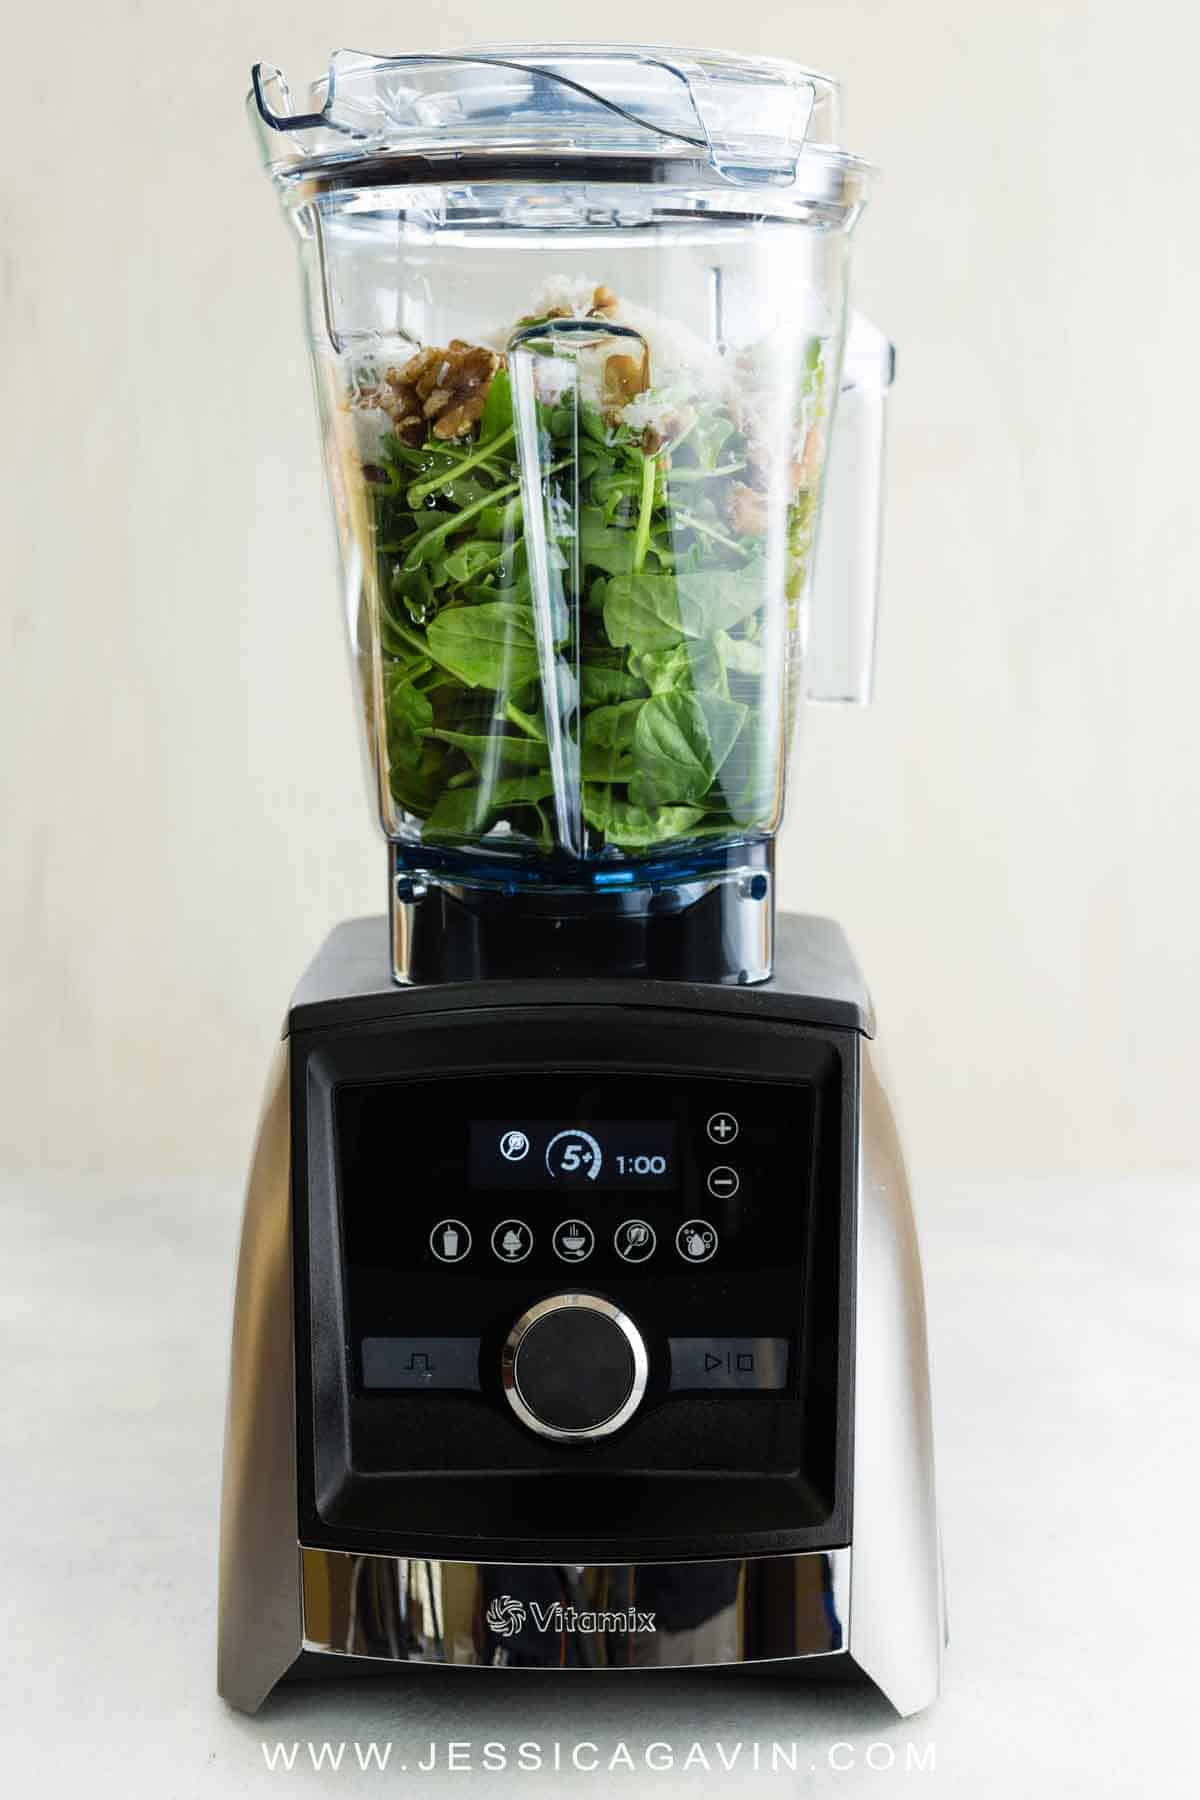 Information guide to kitchen blender basics, covering the uses, benefits, maintenance, shopping tips, and what makes it different than a food processor. #vitamix #ningablender #blender #cooking101